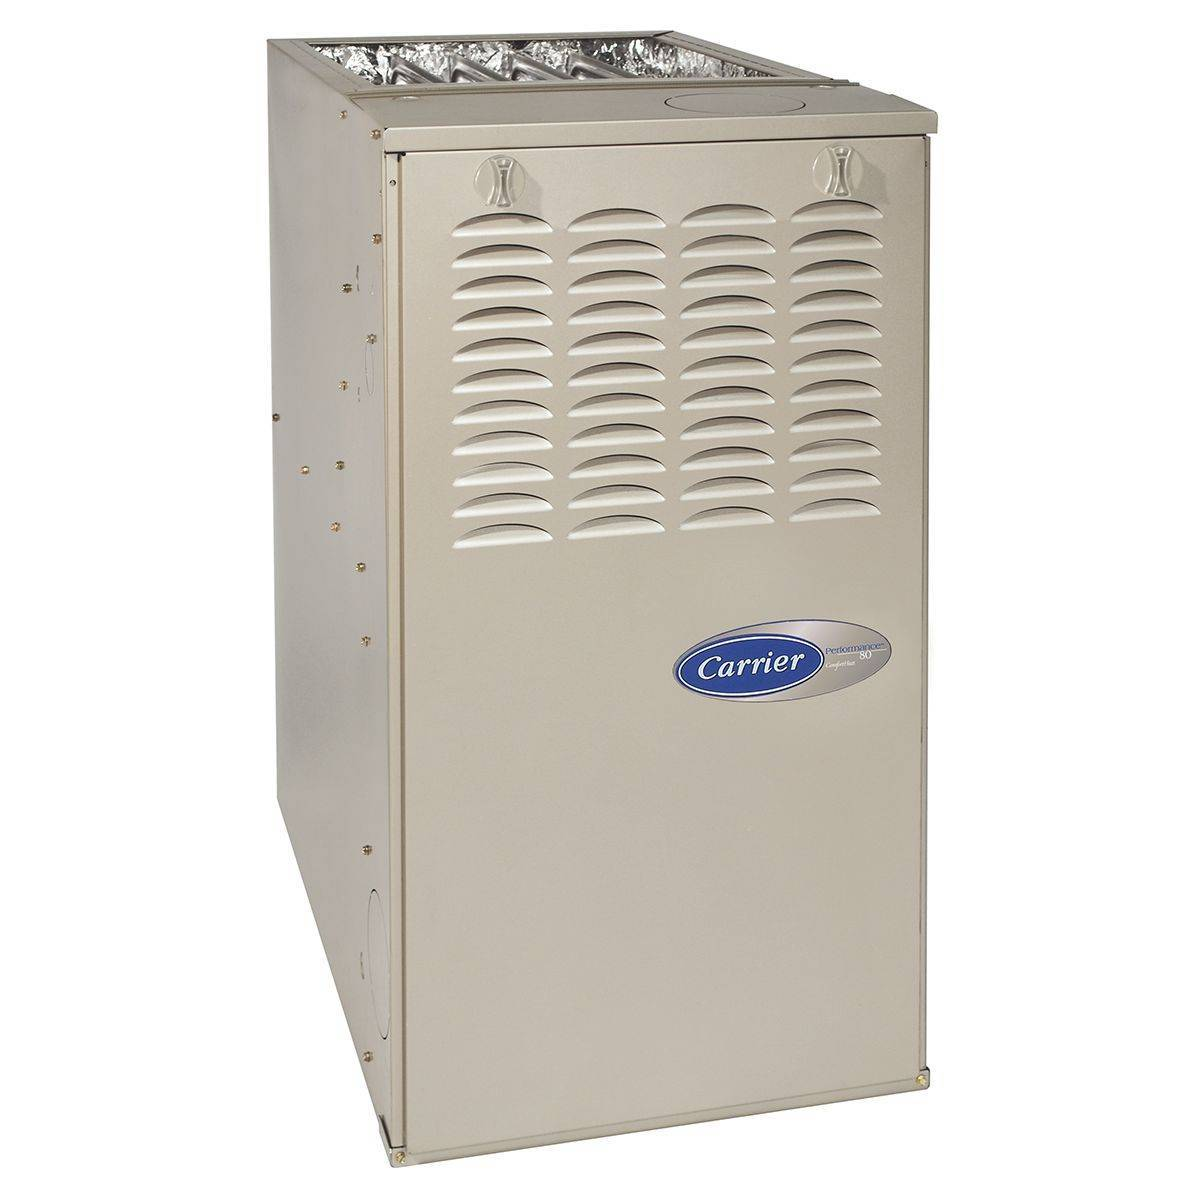 Amvc96 Amana Gas Furnace 96 Afue Two Stage Variable Speed